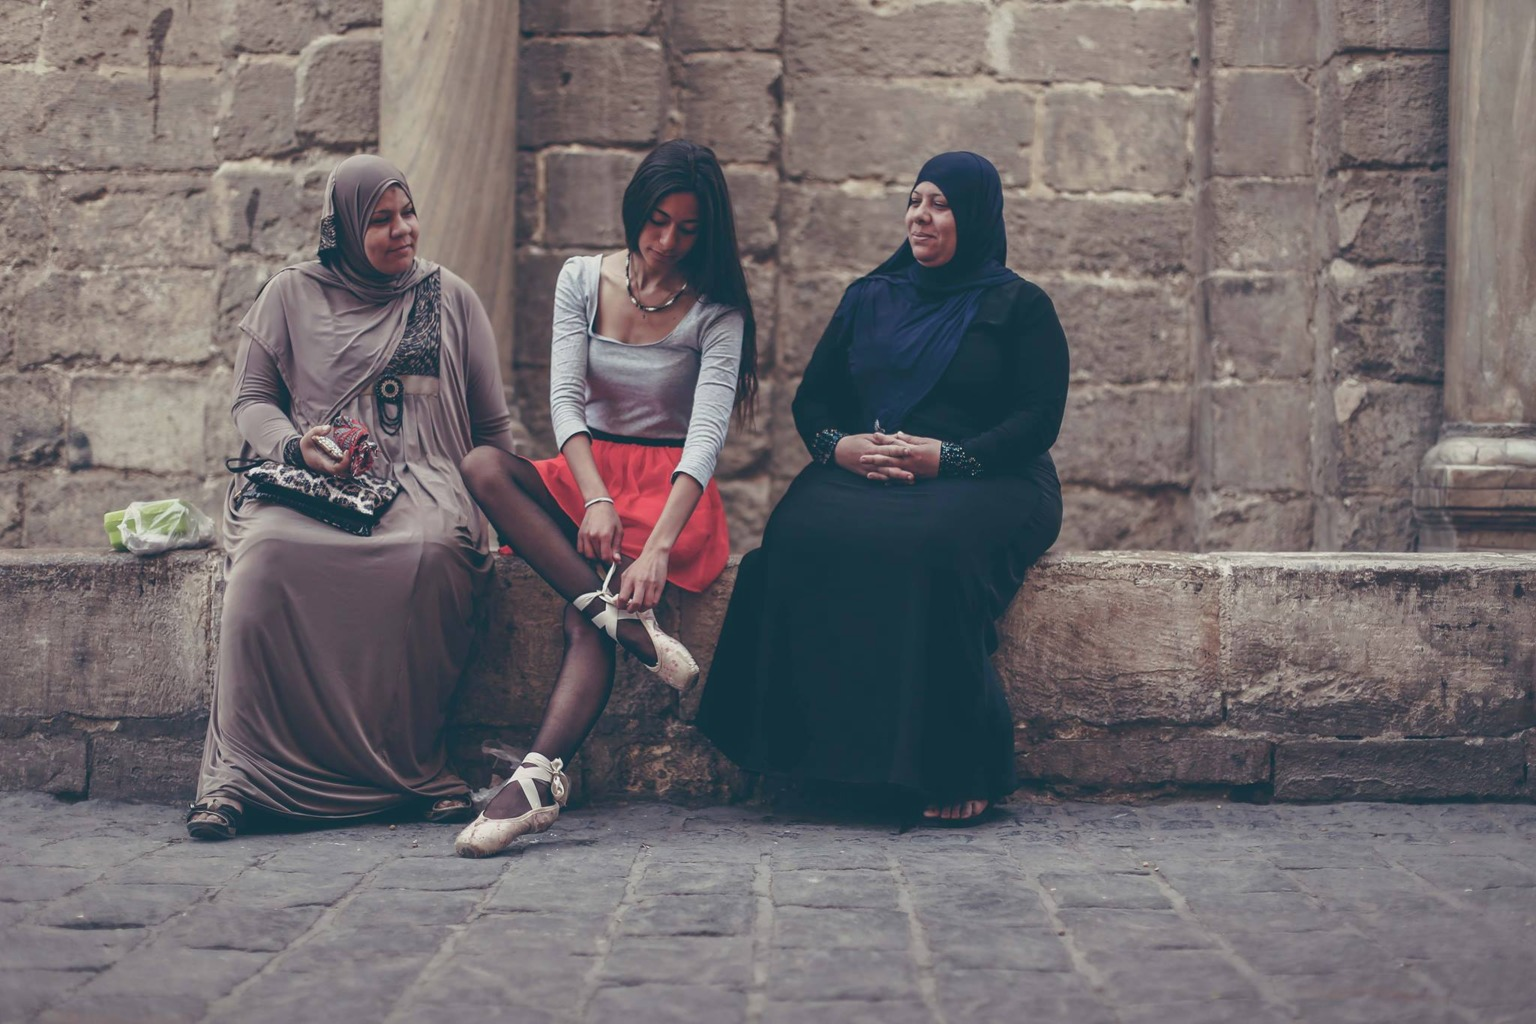 filming ballerinas in cairo with mohamed taher